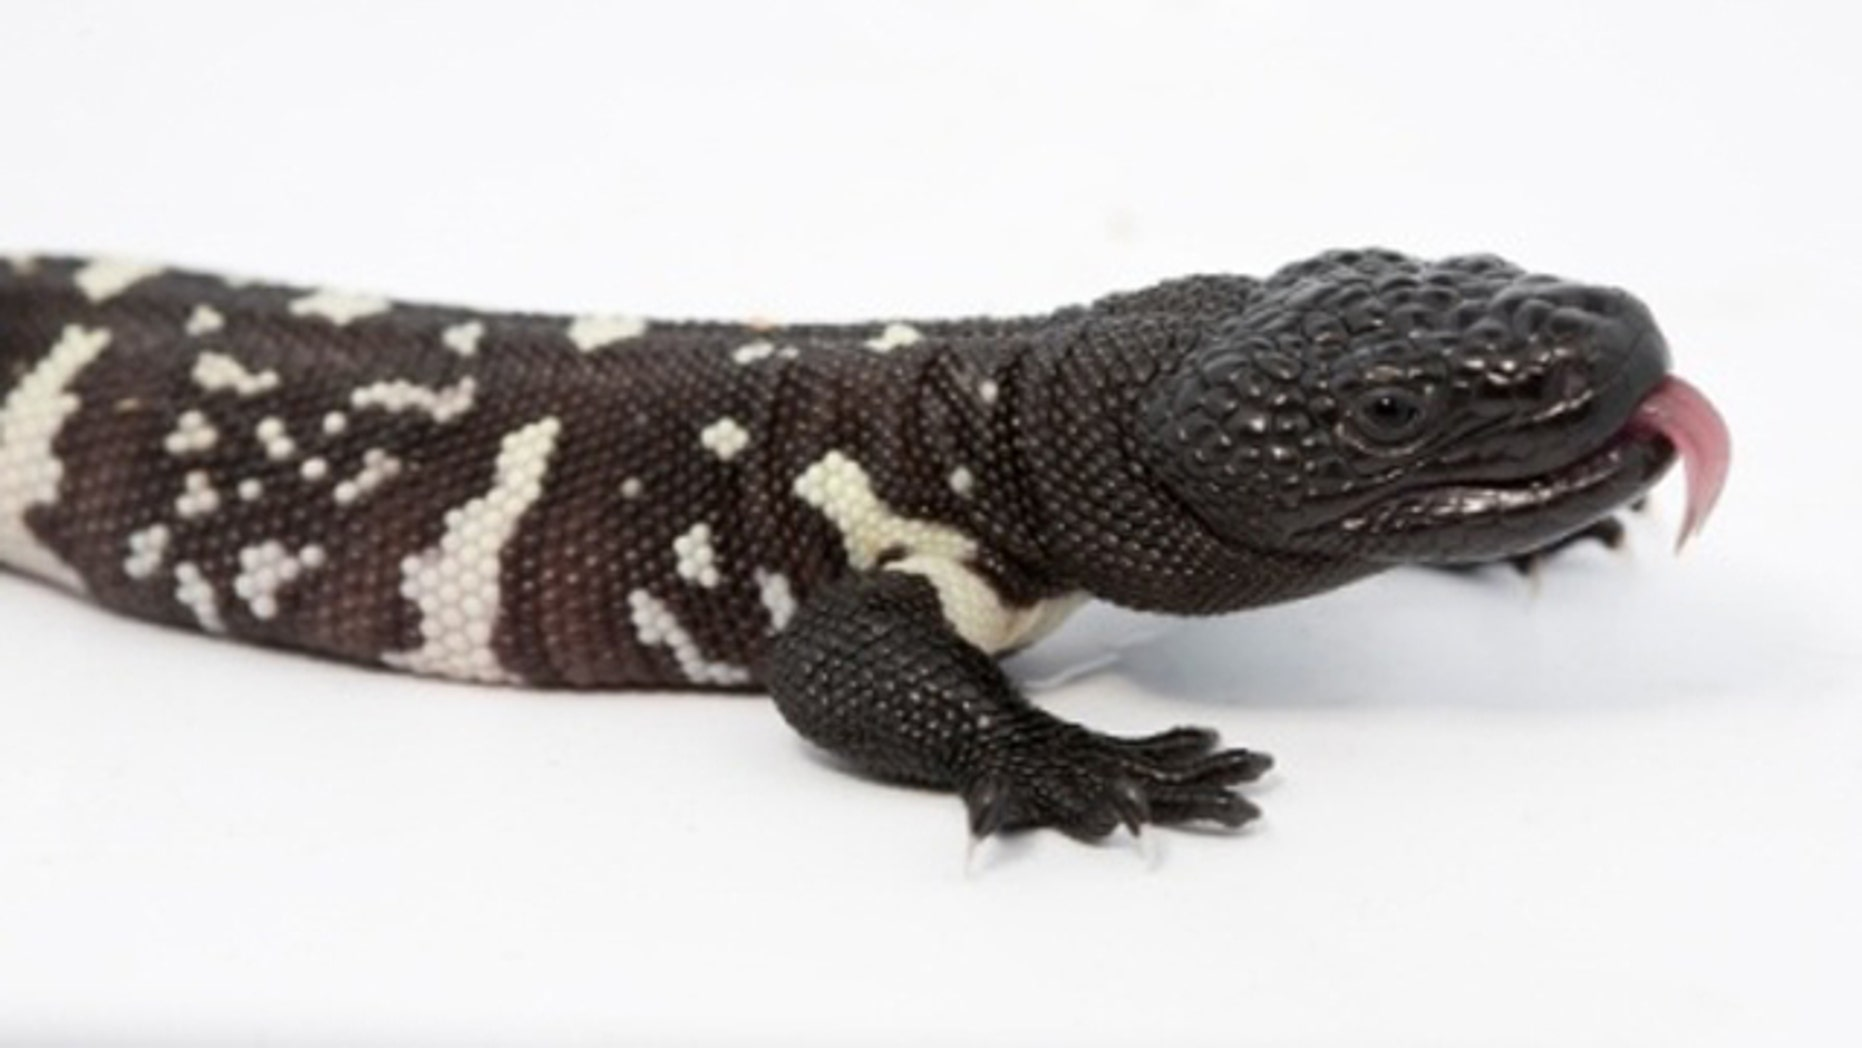 This image, obtained by Fox affiliate WAGA-TV, shows the Guatemalan beaded lizard.